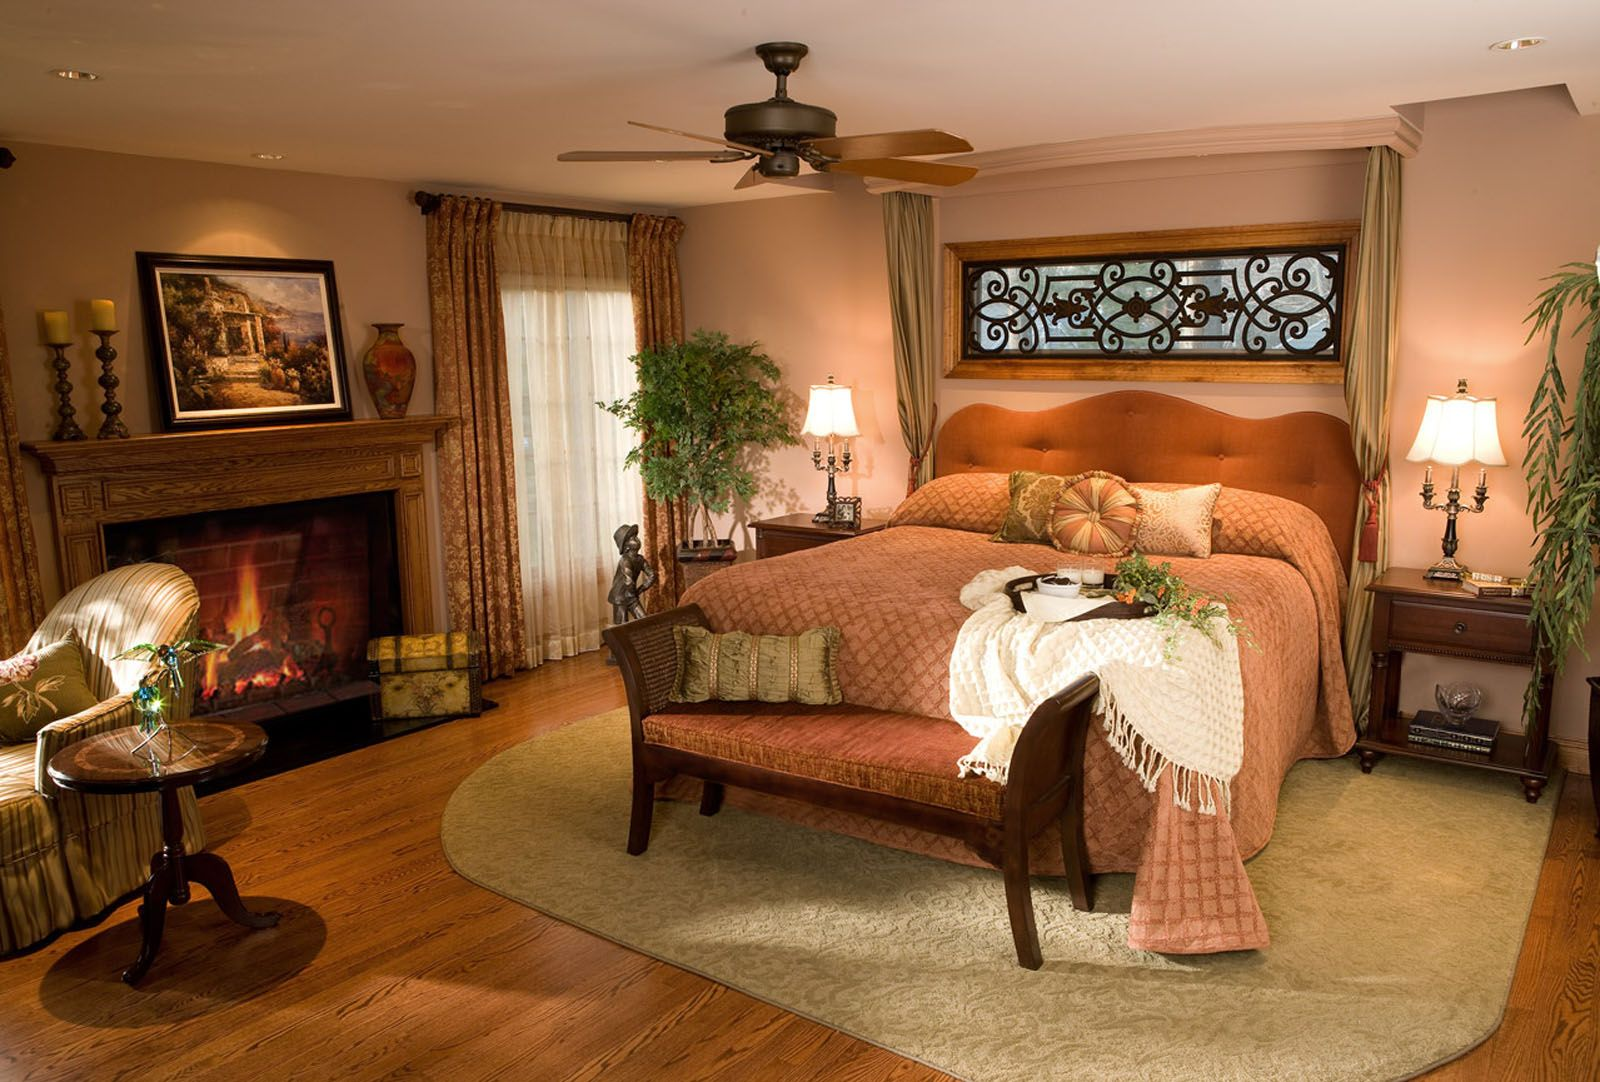 5 Cozy Bedroom Design Ideas For Homeowners On A Budget